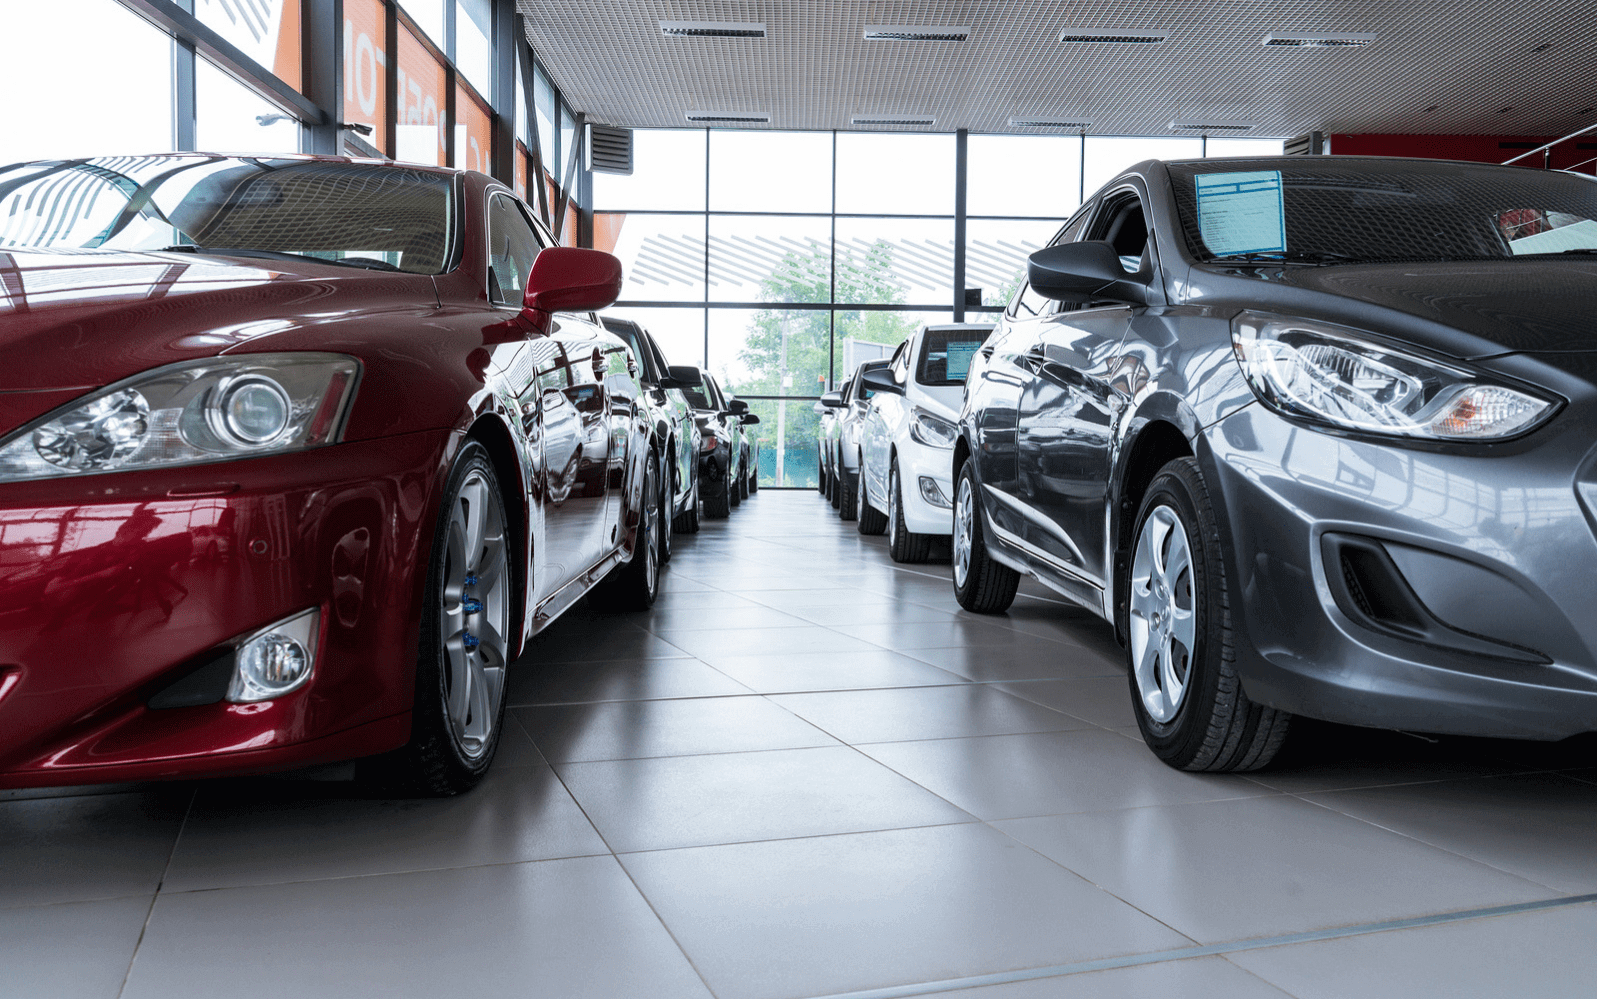 Used cars in showroom